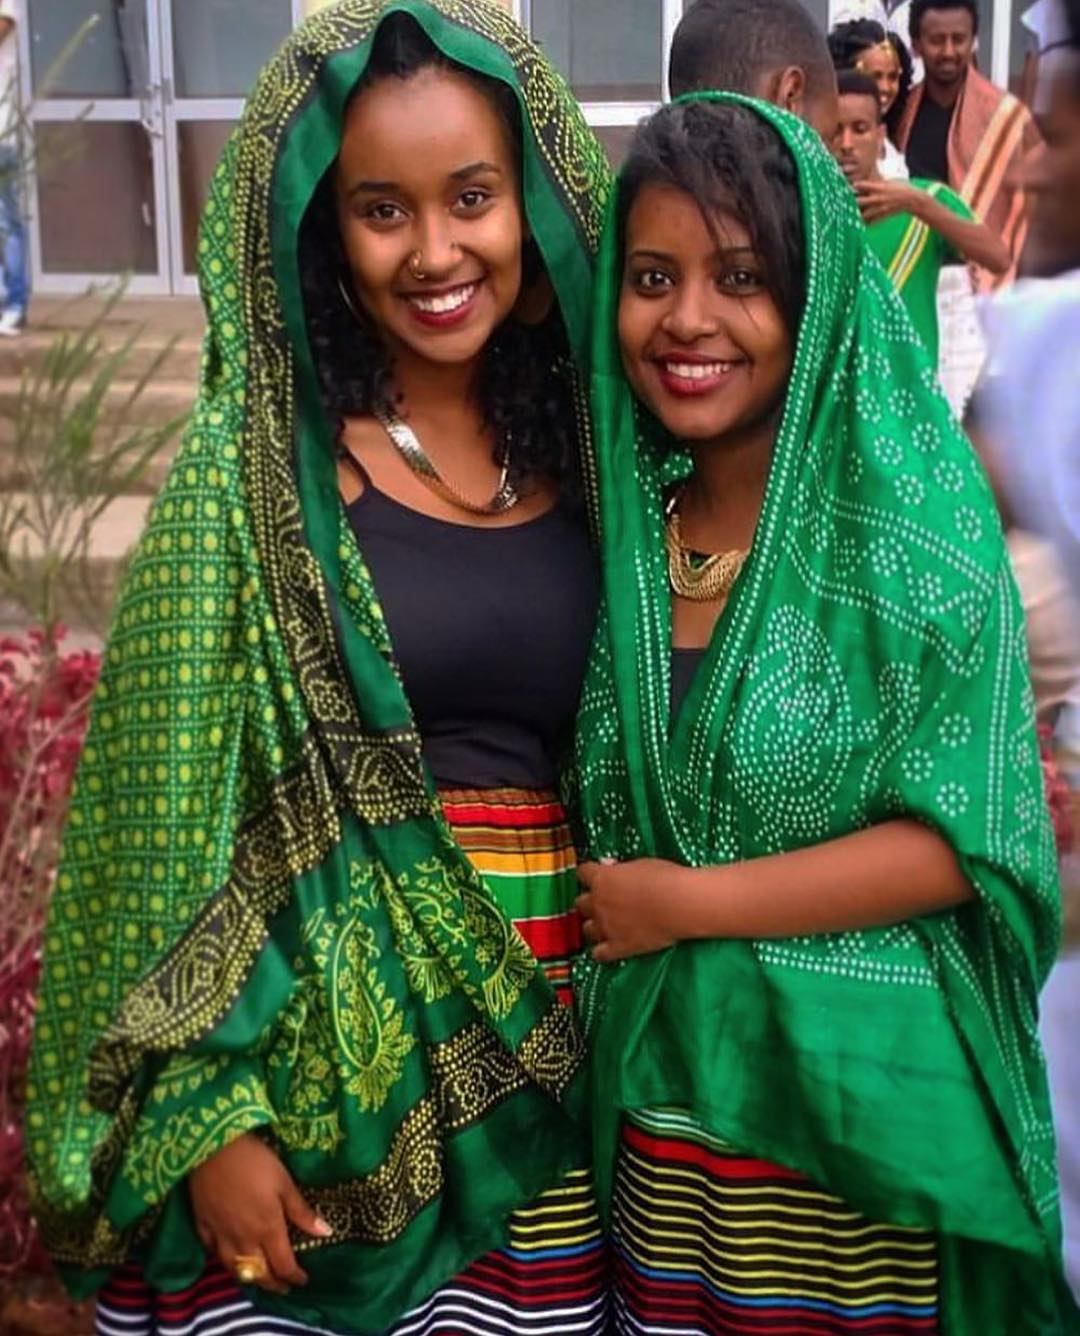 Natural beauties wearing Ethiopian traditional clothes